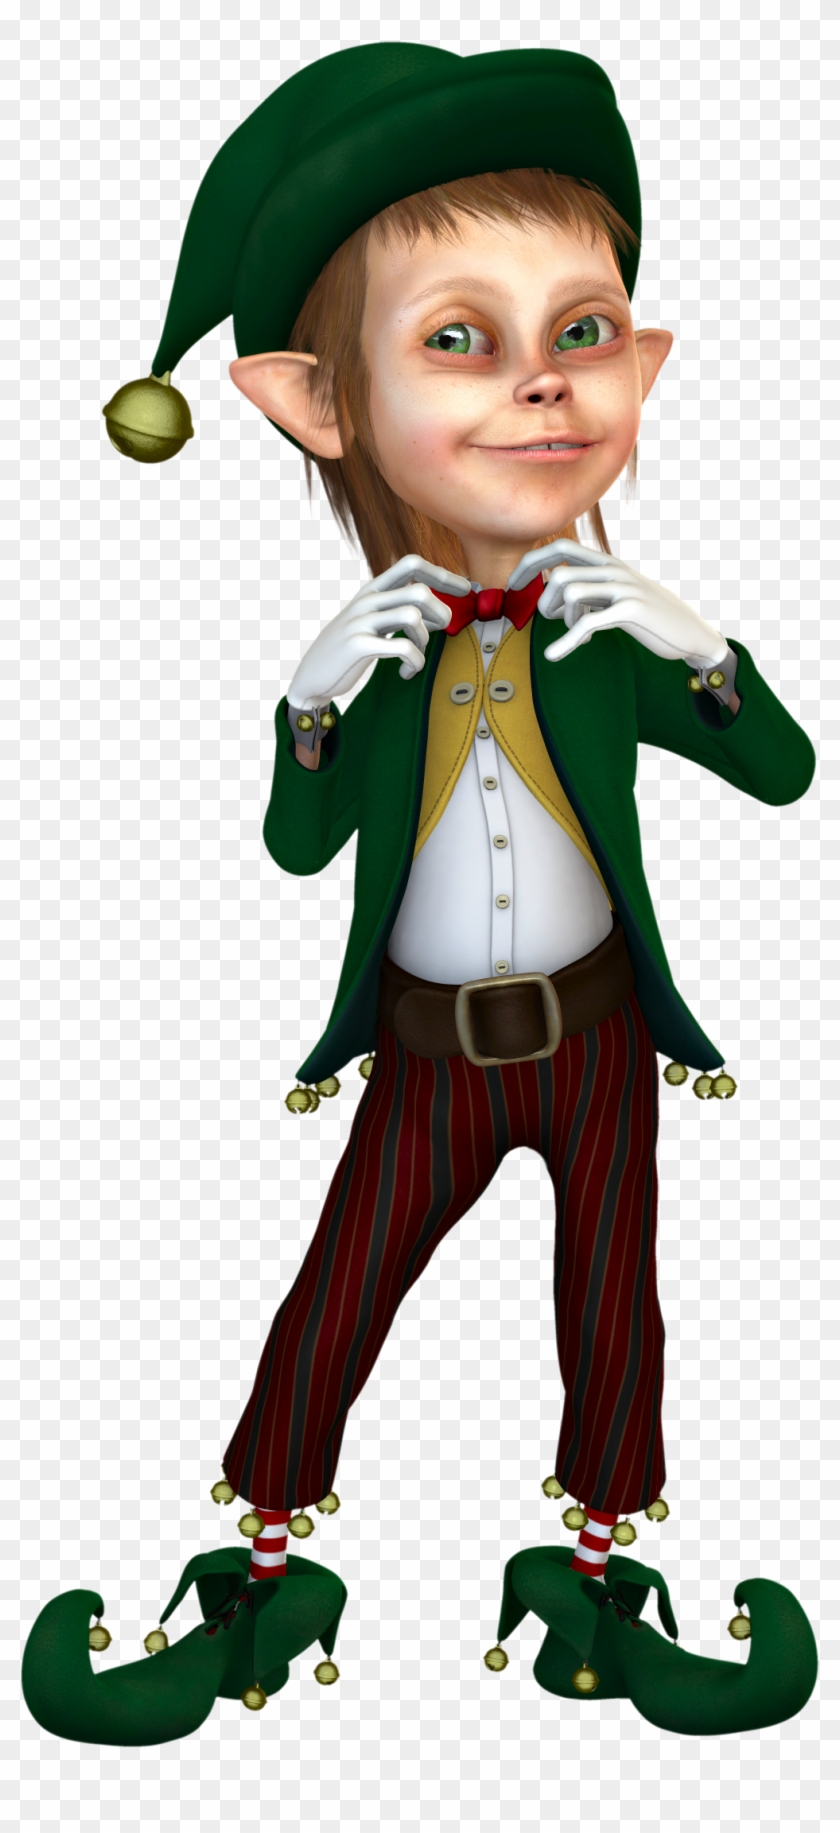 Elf Clipart Transparent Background - Christmas Elf Without Background #287724